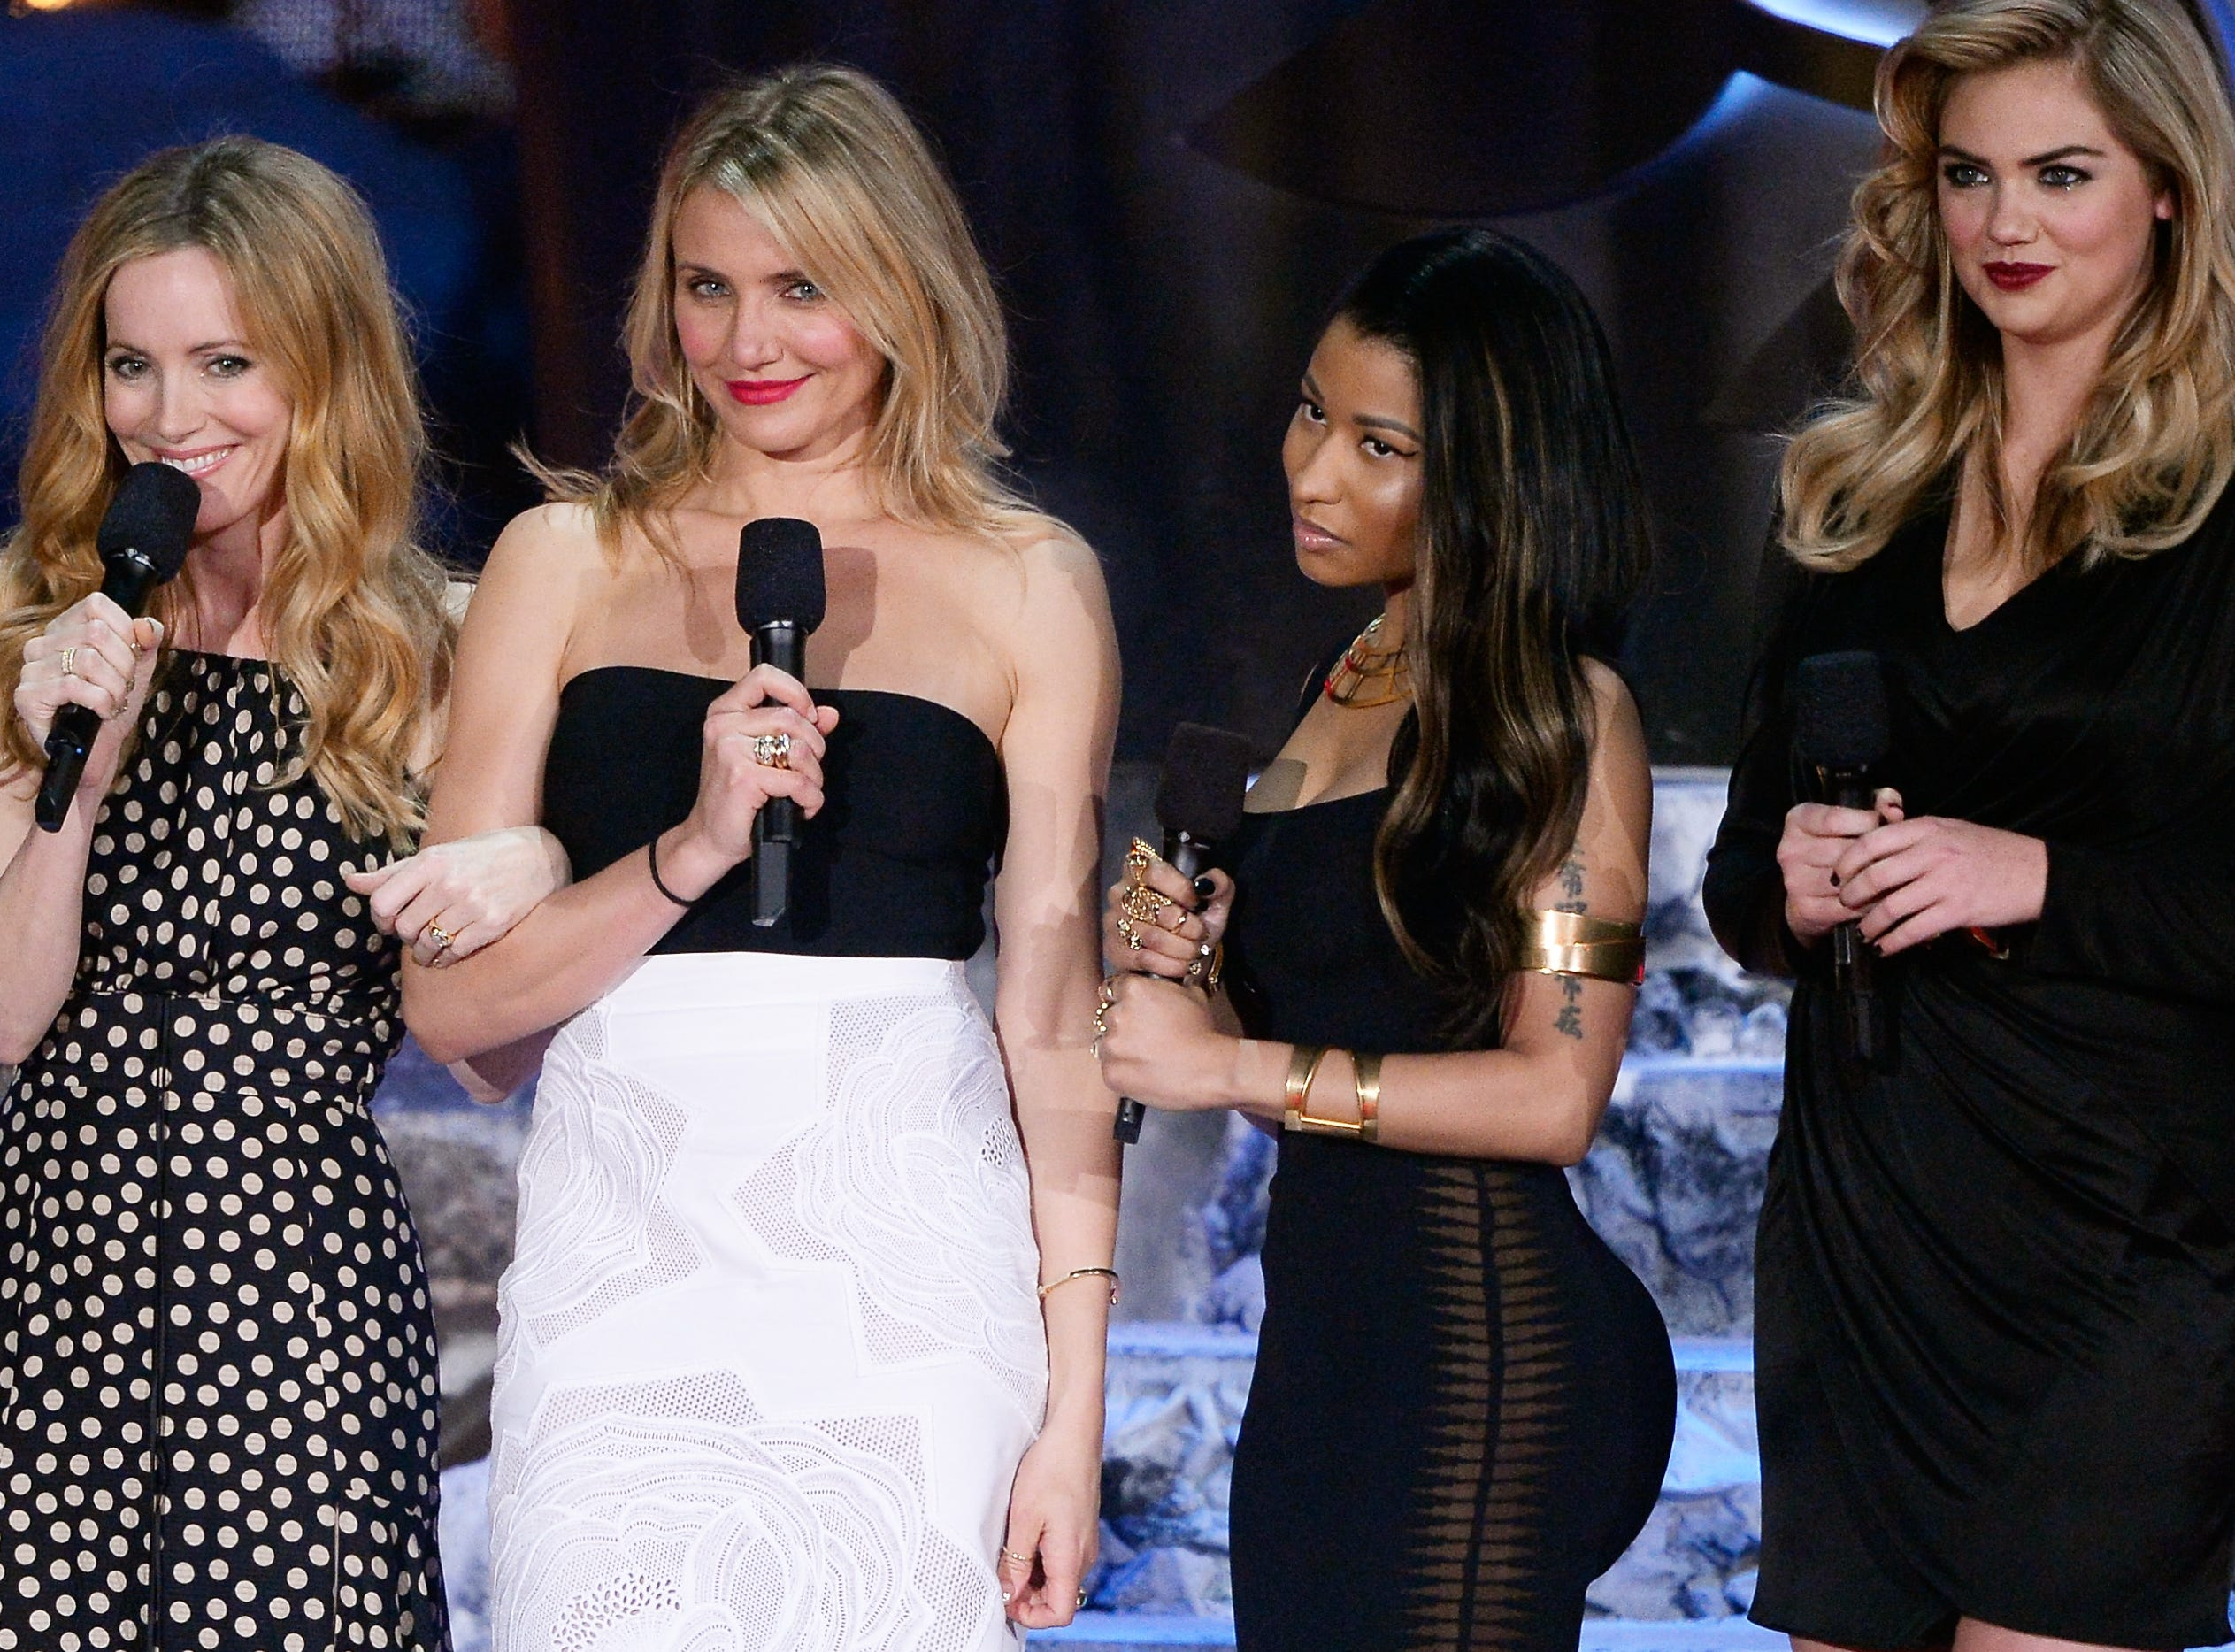 LOS ANGELES, CA - APRIL 13:  (L-R) Actress Leslie Mann, actress Cameron Diaz, recording   artist Nicki Minaj, and model/actress Kate Upton speak onstage at the 2014 MTV Movie Awards at Nokia Theatre L.A. Live on April 13, 2014 in Los Angeles, California.  (Photo by Kevork Djansezian/Getty Images for MTV) ORG XMIT: 480854043 ORIG FILE ID: 484688209